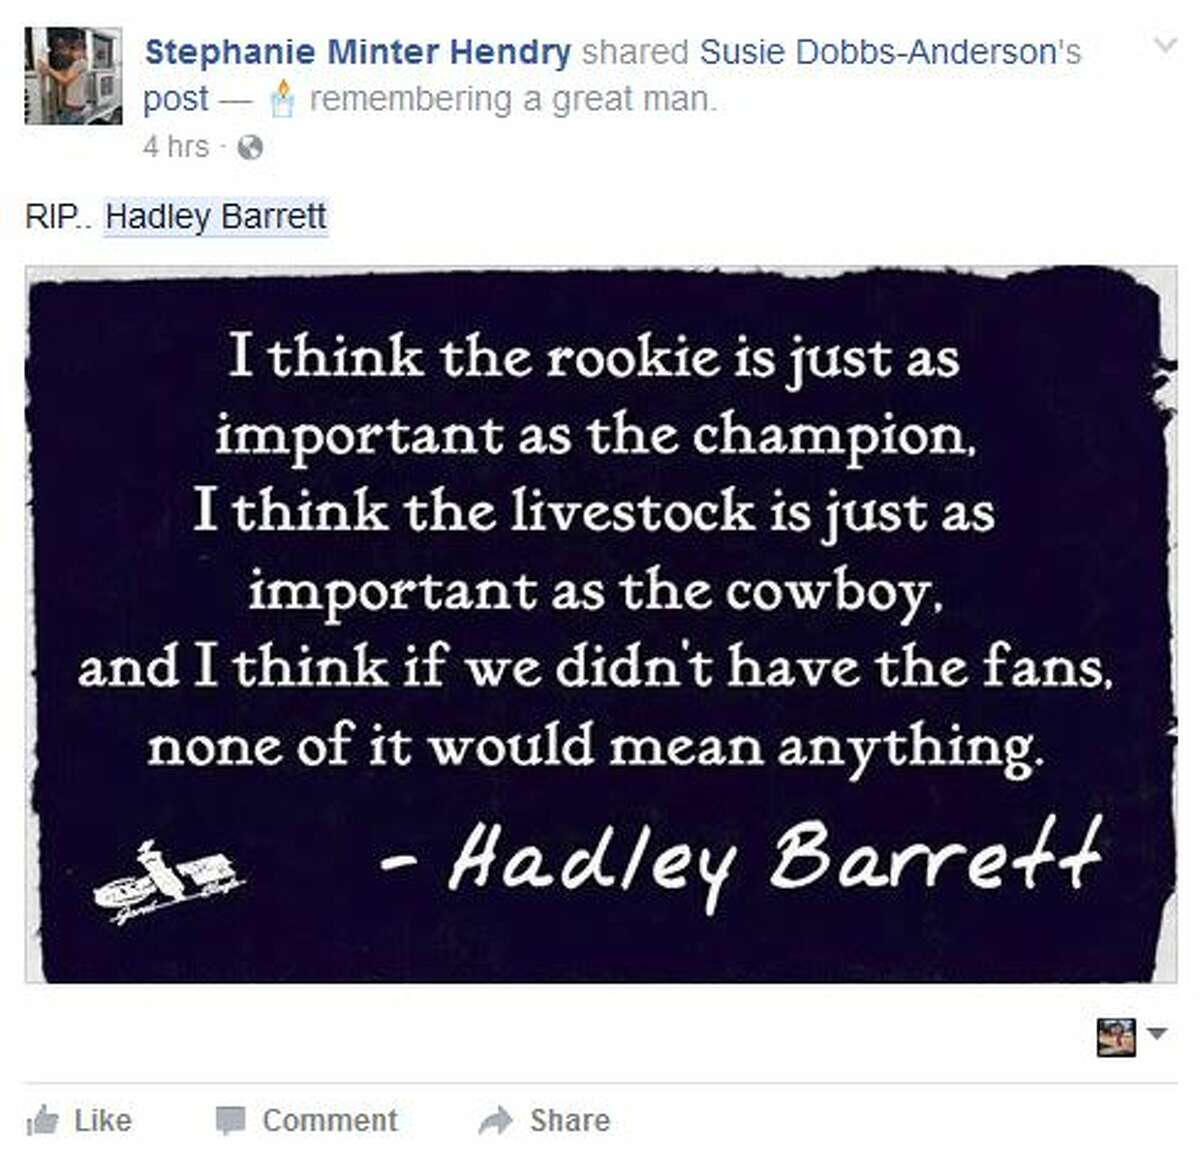 Tributes called Hadley Barrett the voice of rodeo and the greatest announcer of all time. Barrett also the revered announcer of the San Antonio Stock Show & Rodeo died Thursday in Colorado at age 87.